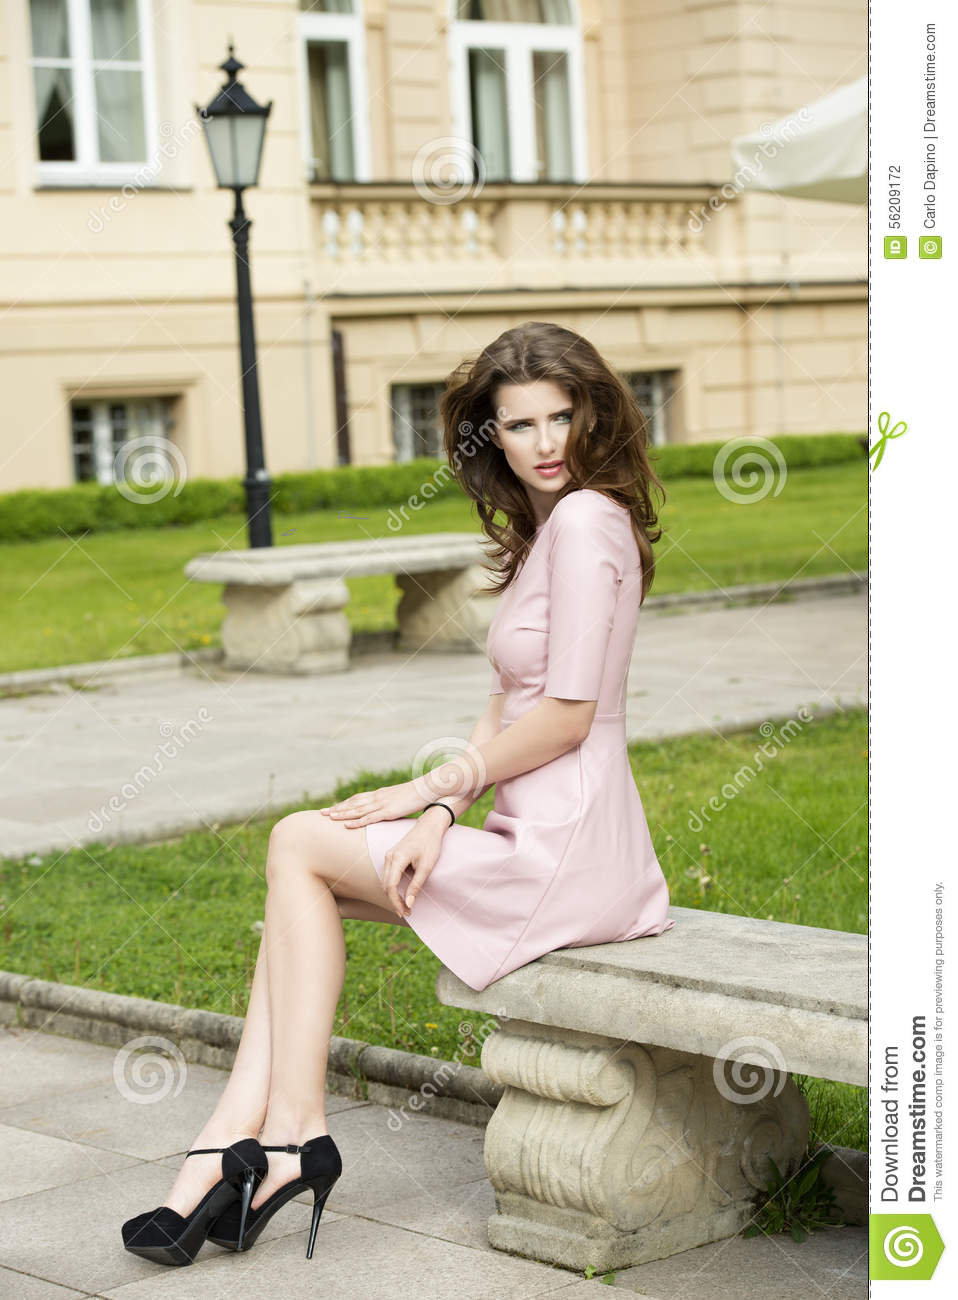 Lovely Woman In Old Park Stock Photo - Image: 56209172